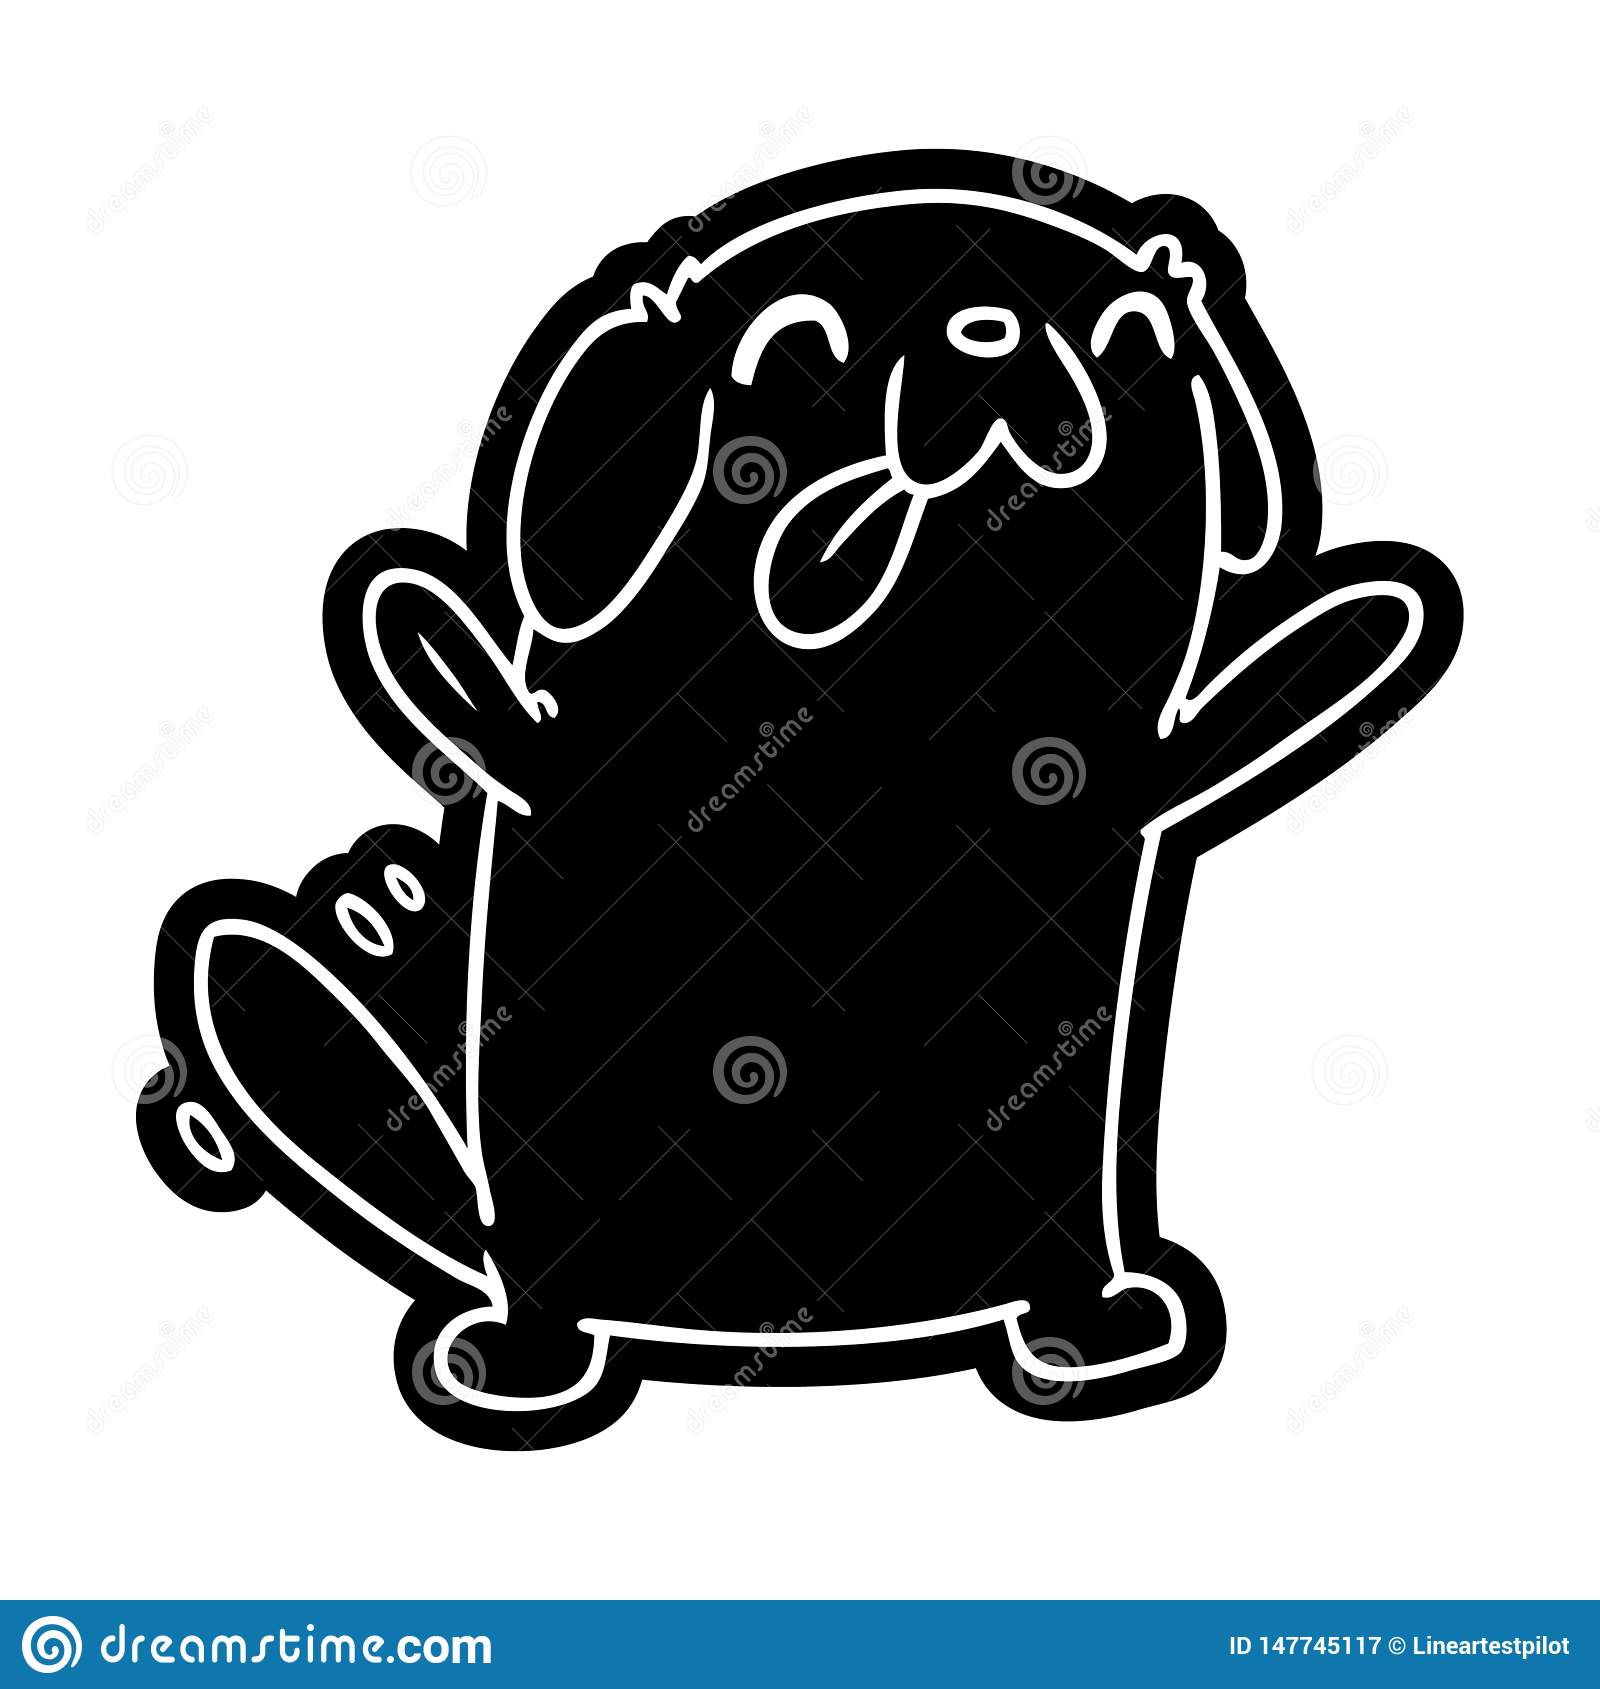 Cartoon Icon Symbol Sign Kawaii Cute Dog Pet Animal Furry Friend Puppy Art Illustration Line Drawing Doodle Quirky Freehand Drawn Free Hand Ink Black White Artwork Old Stock Illustrations 13 Cartoon